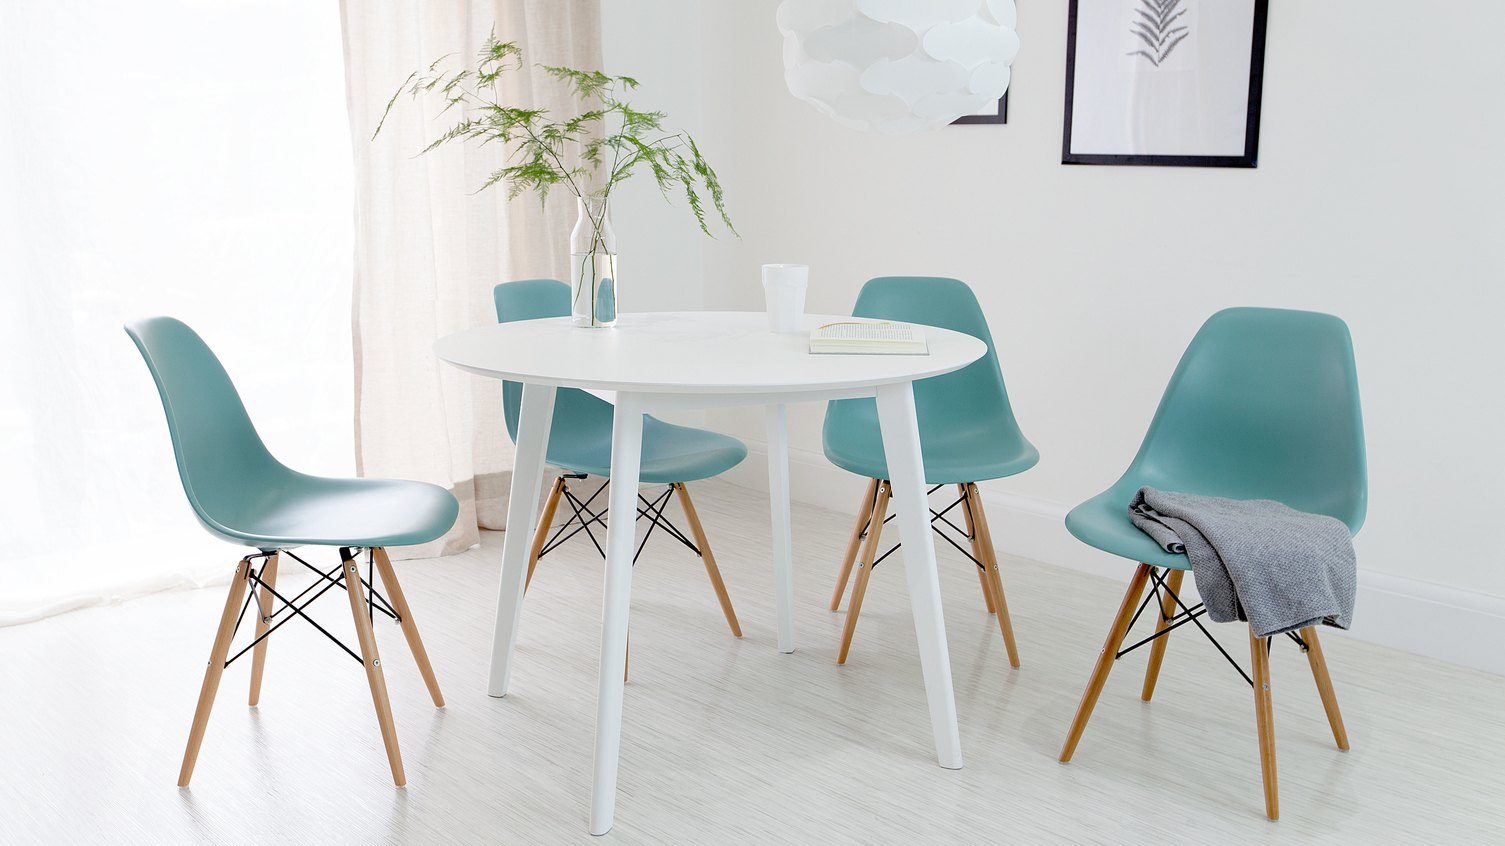 Round 6 Seater Dining Tables Images Dining Table Ideas : terni white round dining table 6 from sorahana.info size 1505 x 846 jpeg 129kB